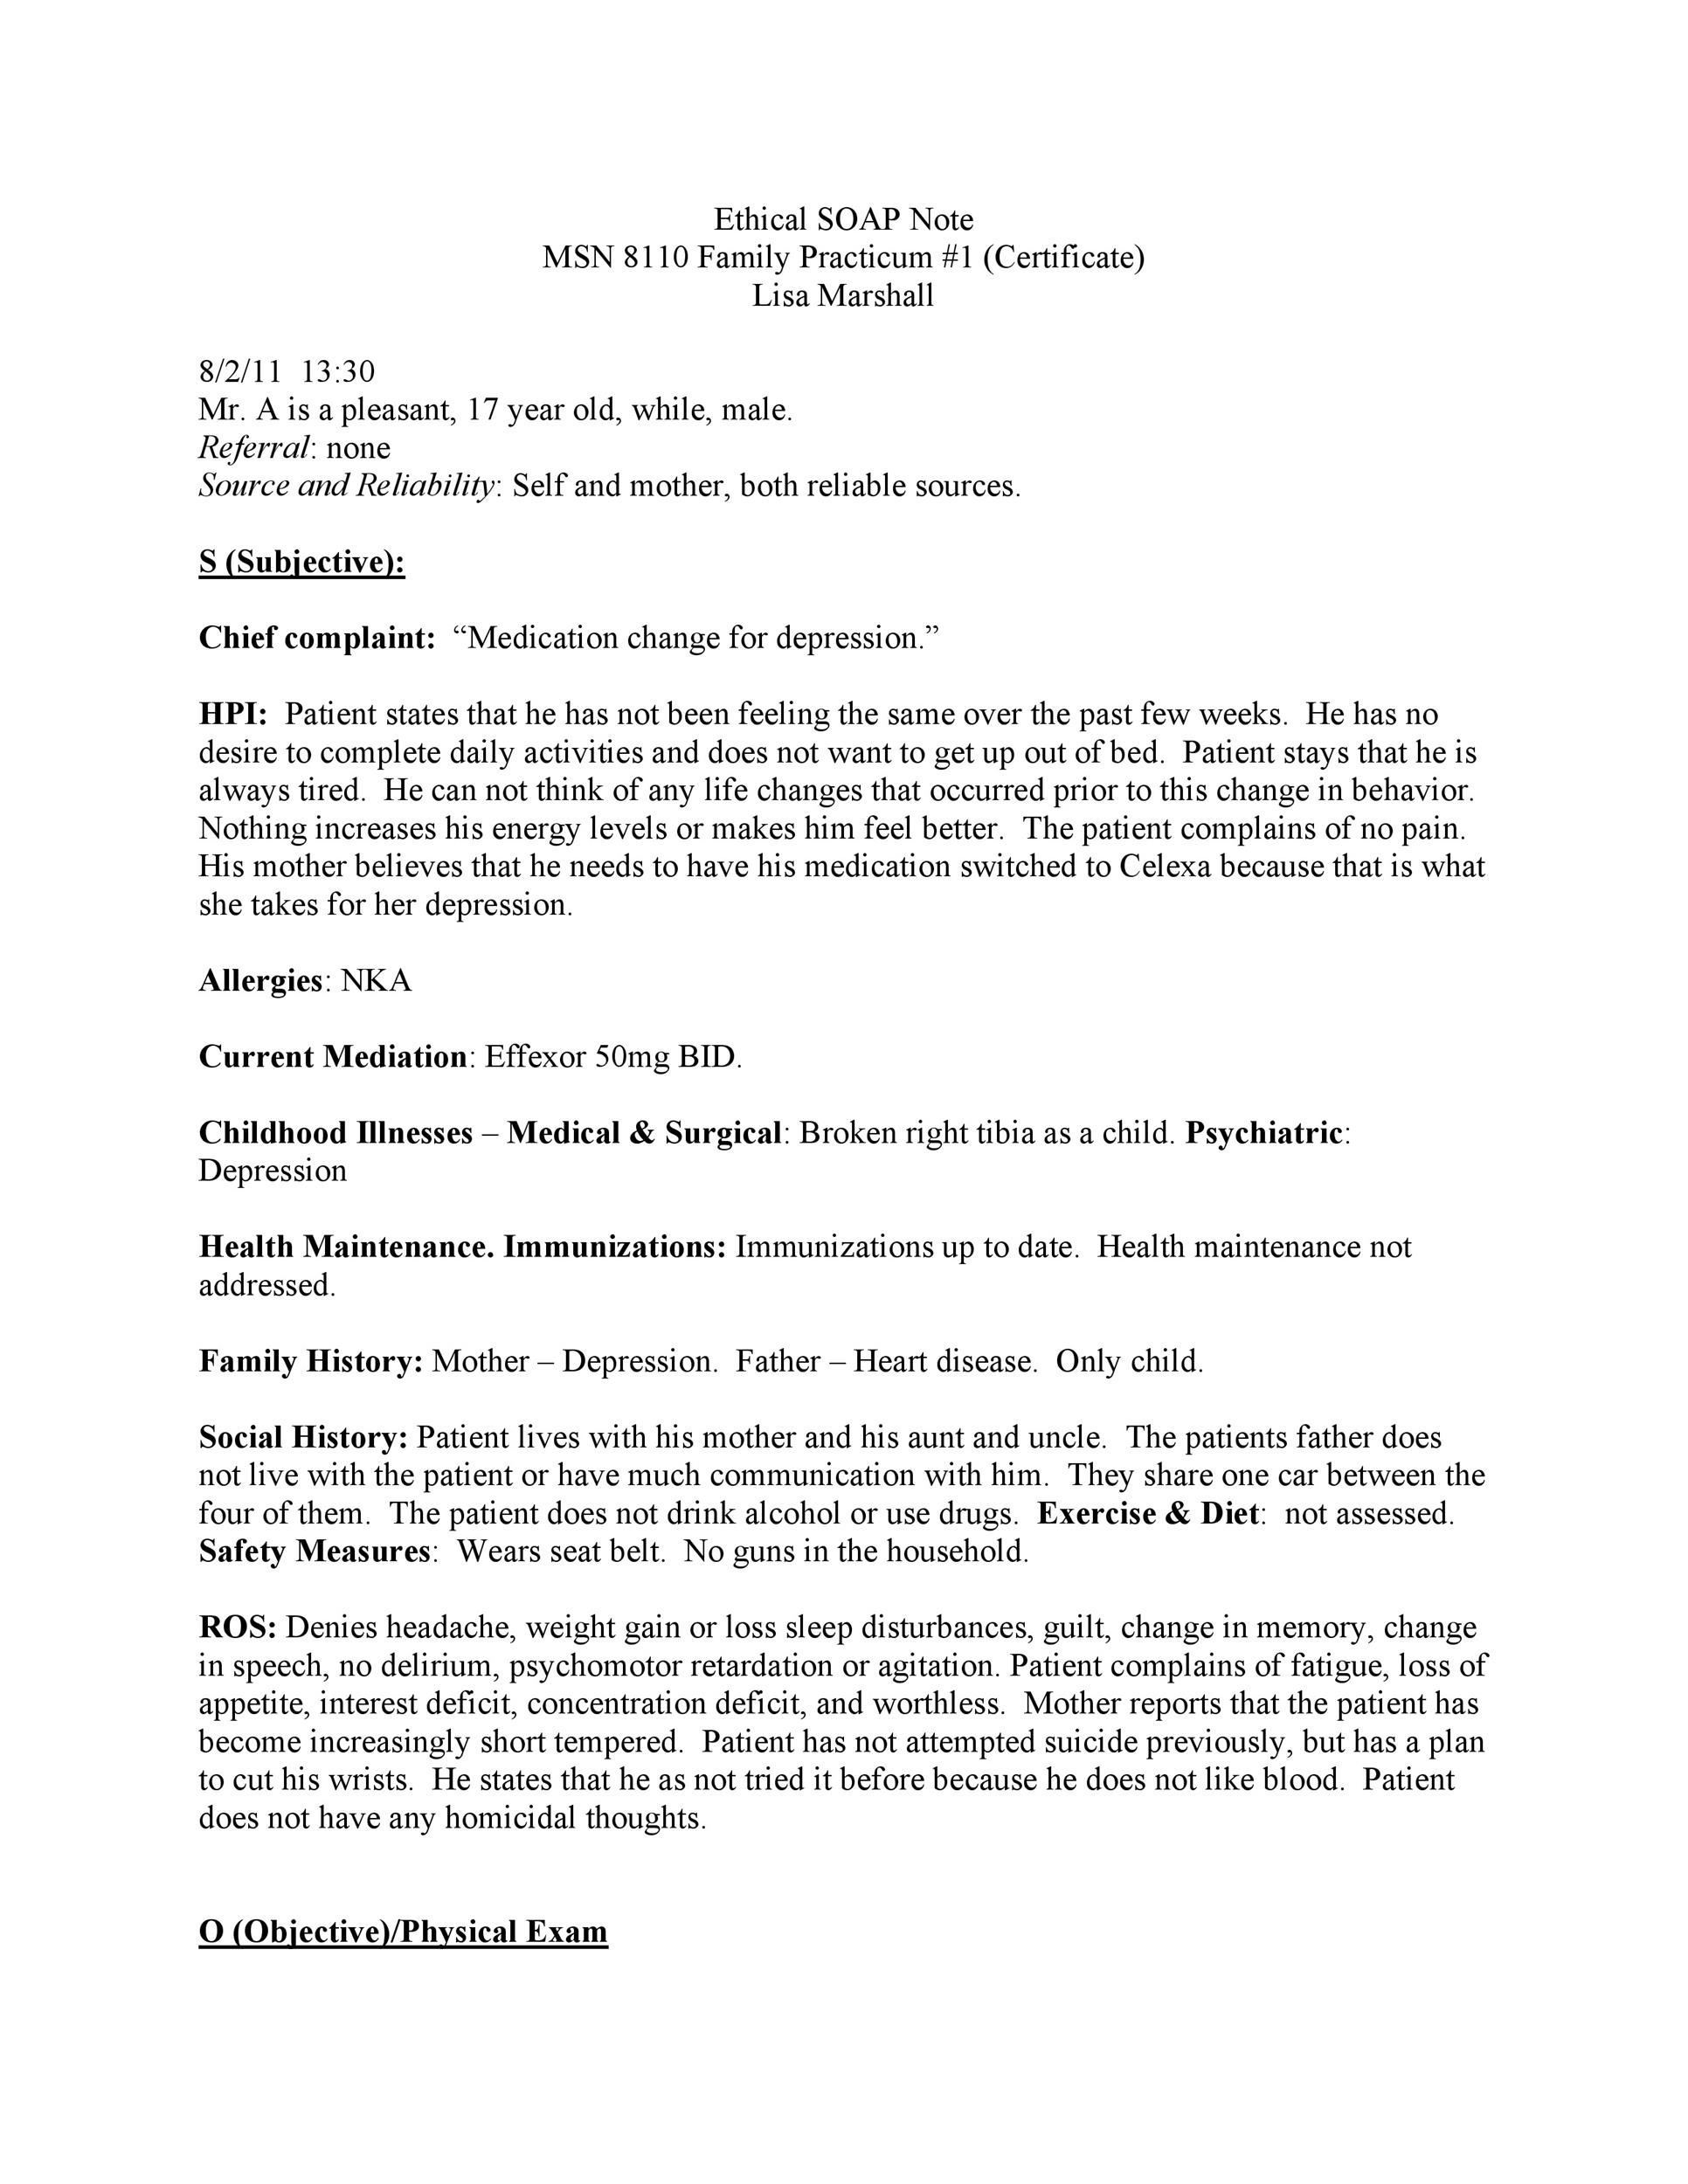 Free Soap Note Template 06